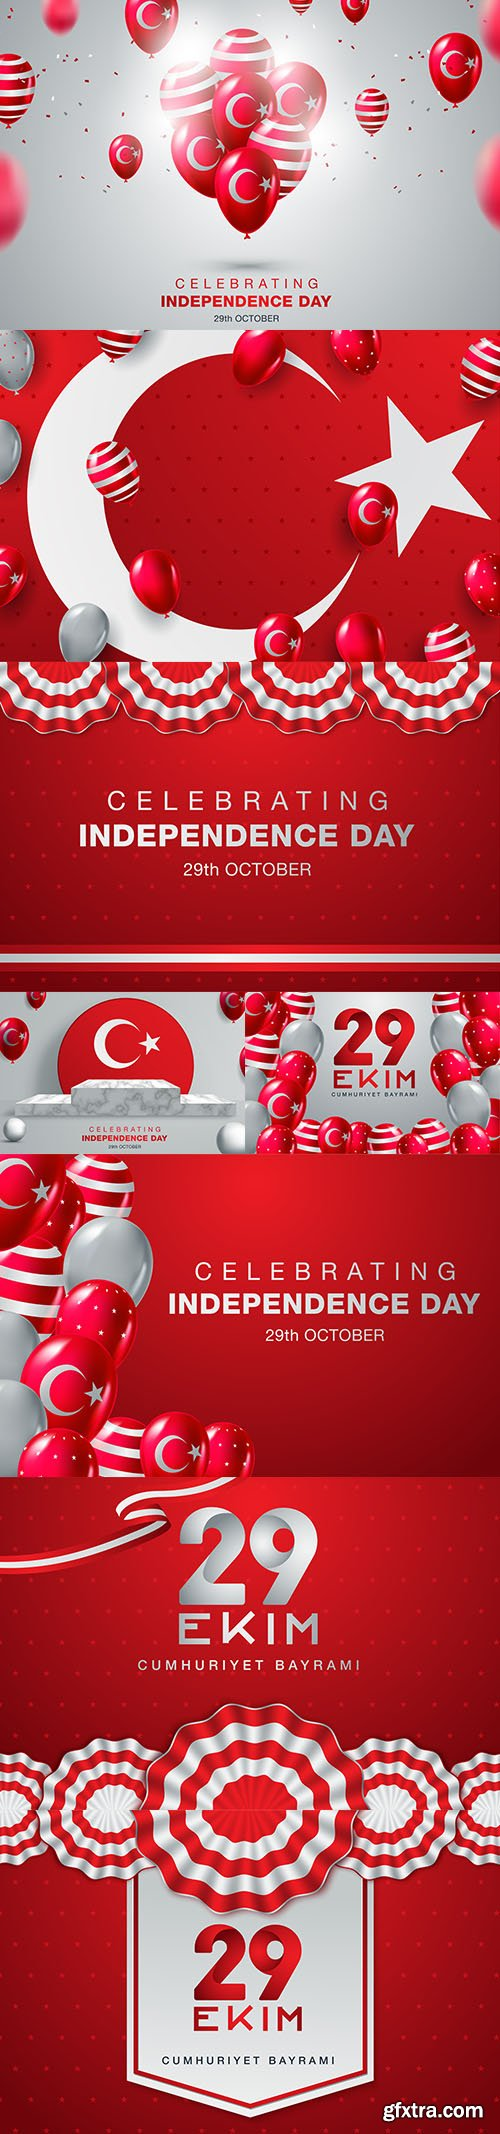 National Republic Day Turkey 29th October